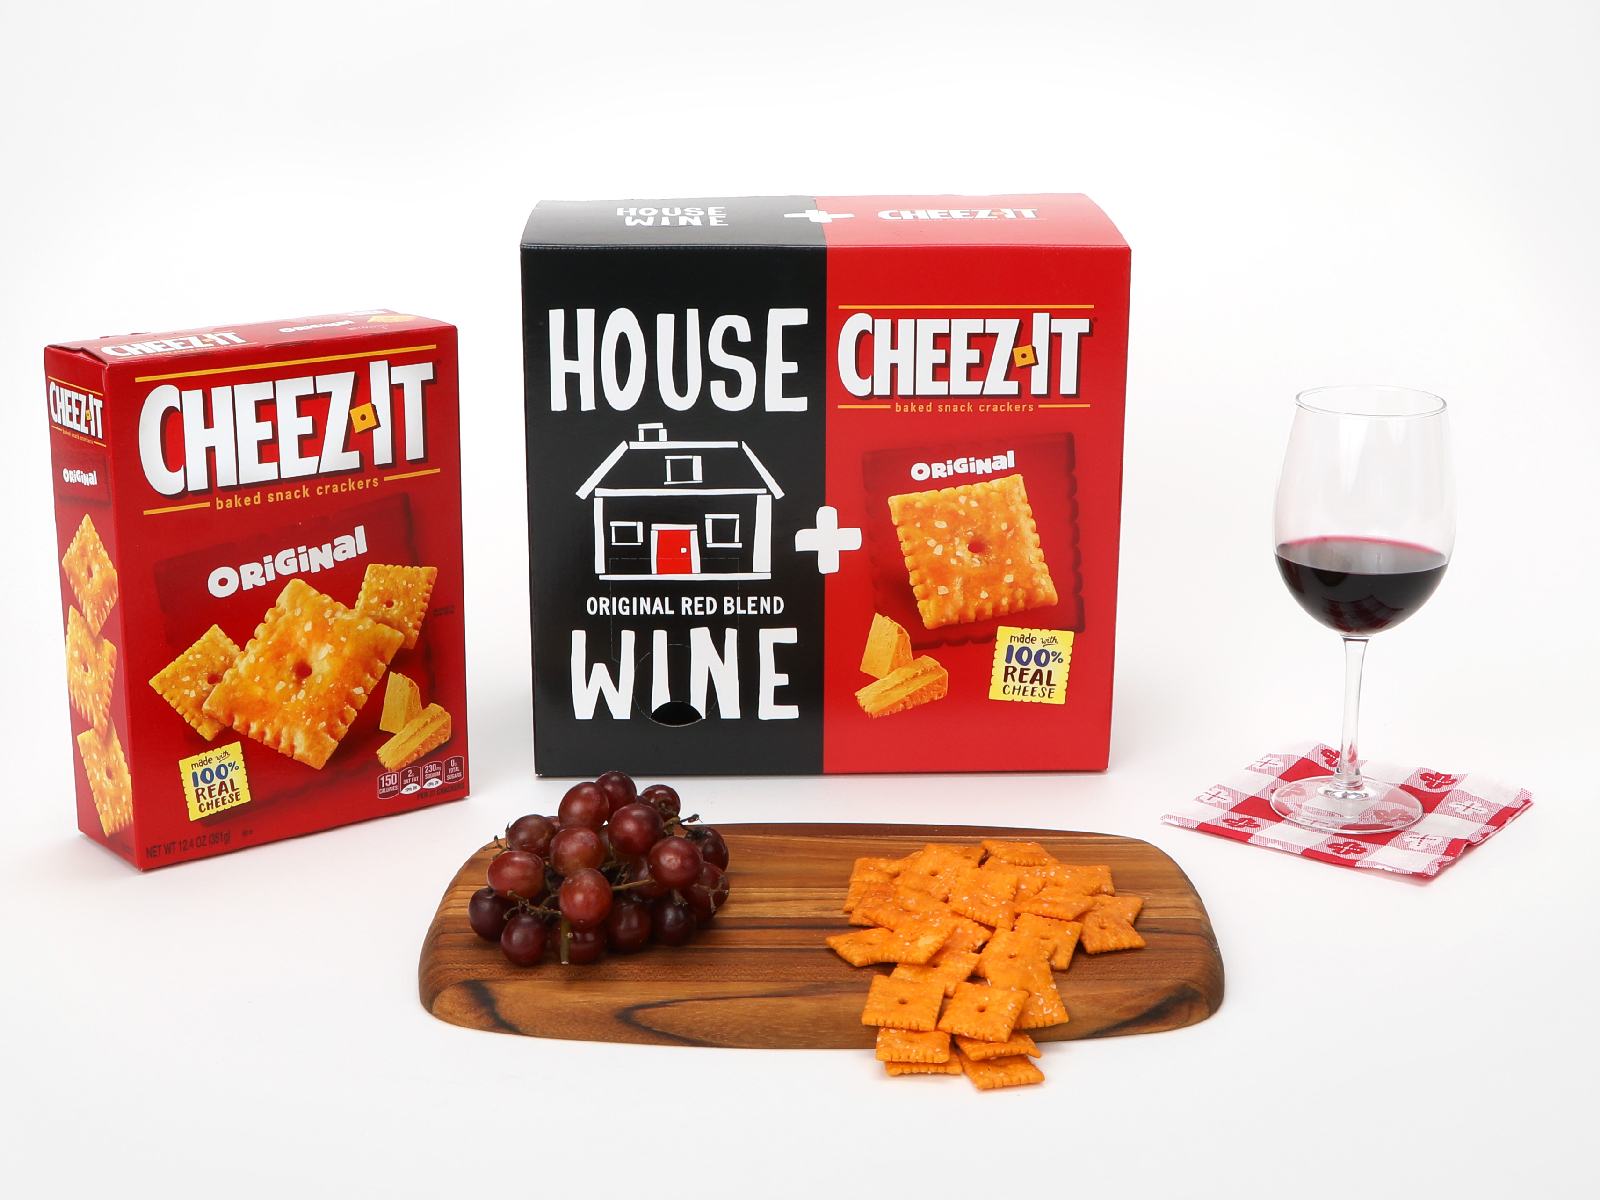 wine-cheez-it-box-2-FT-BLOG0719.jpg